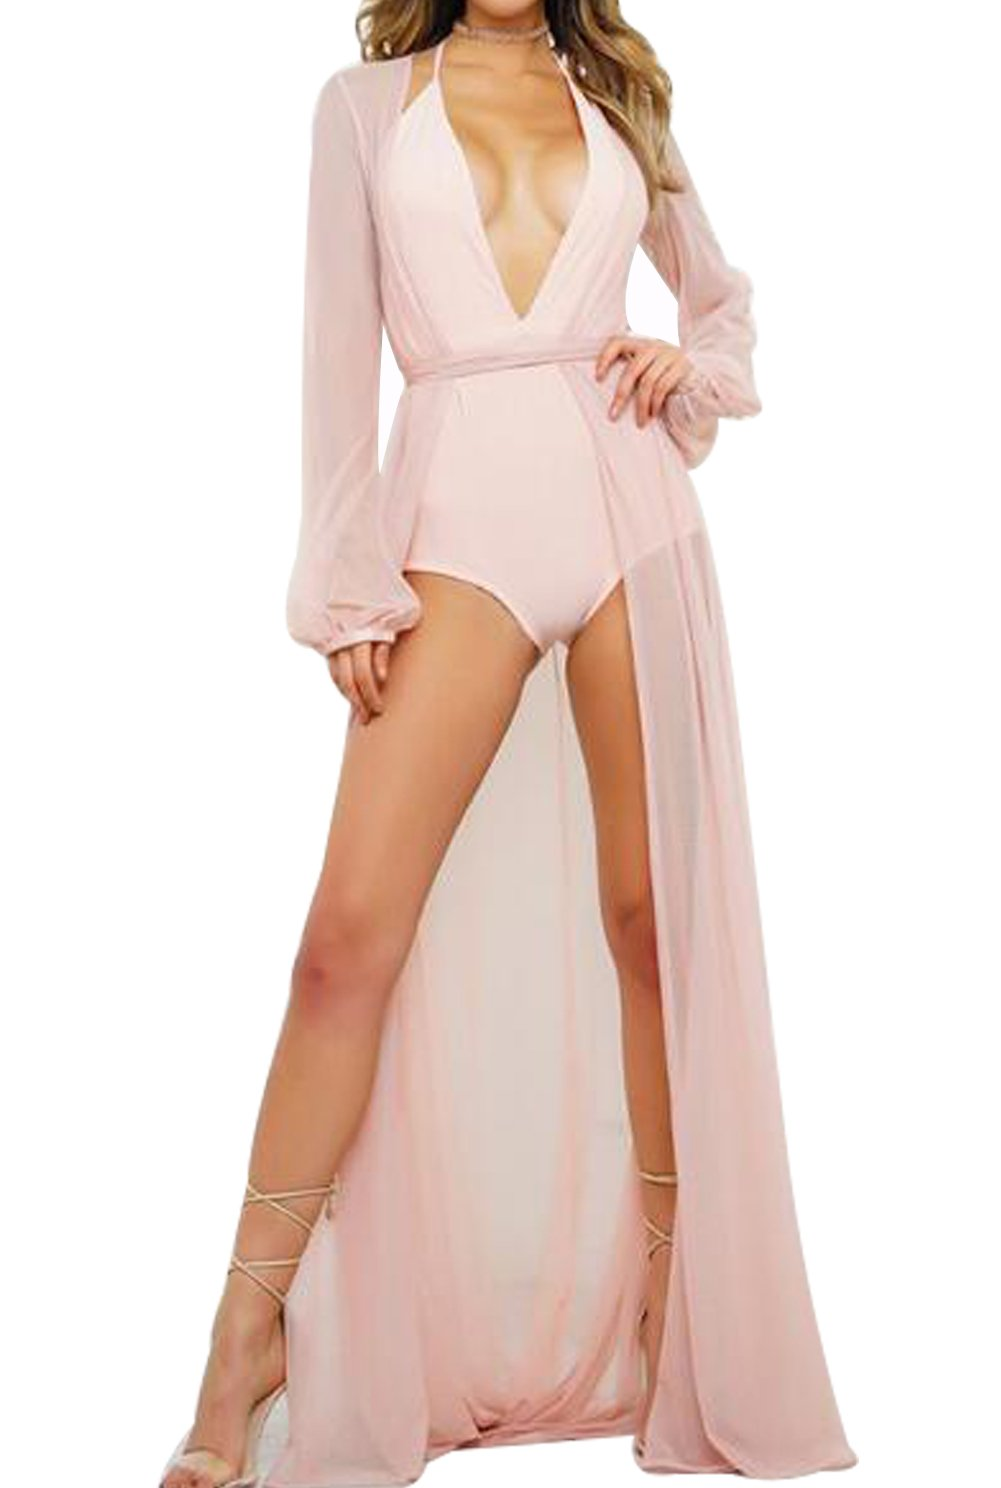 Women's Sexy Sheer Mesh Belted Solid Short/Long Sleeve Cover up Kimono Cardigan Size L (Pink 2)